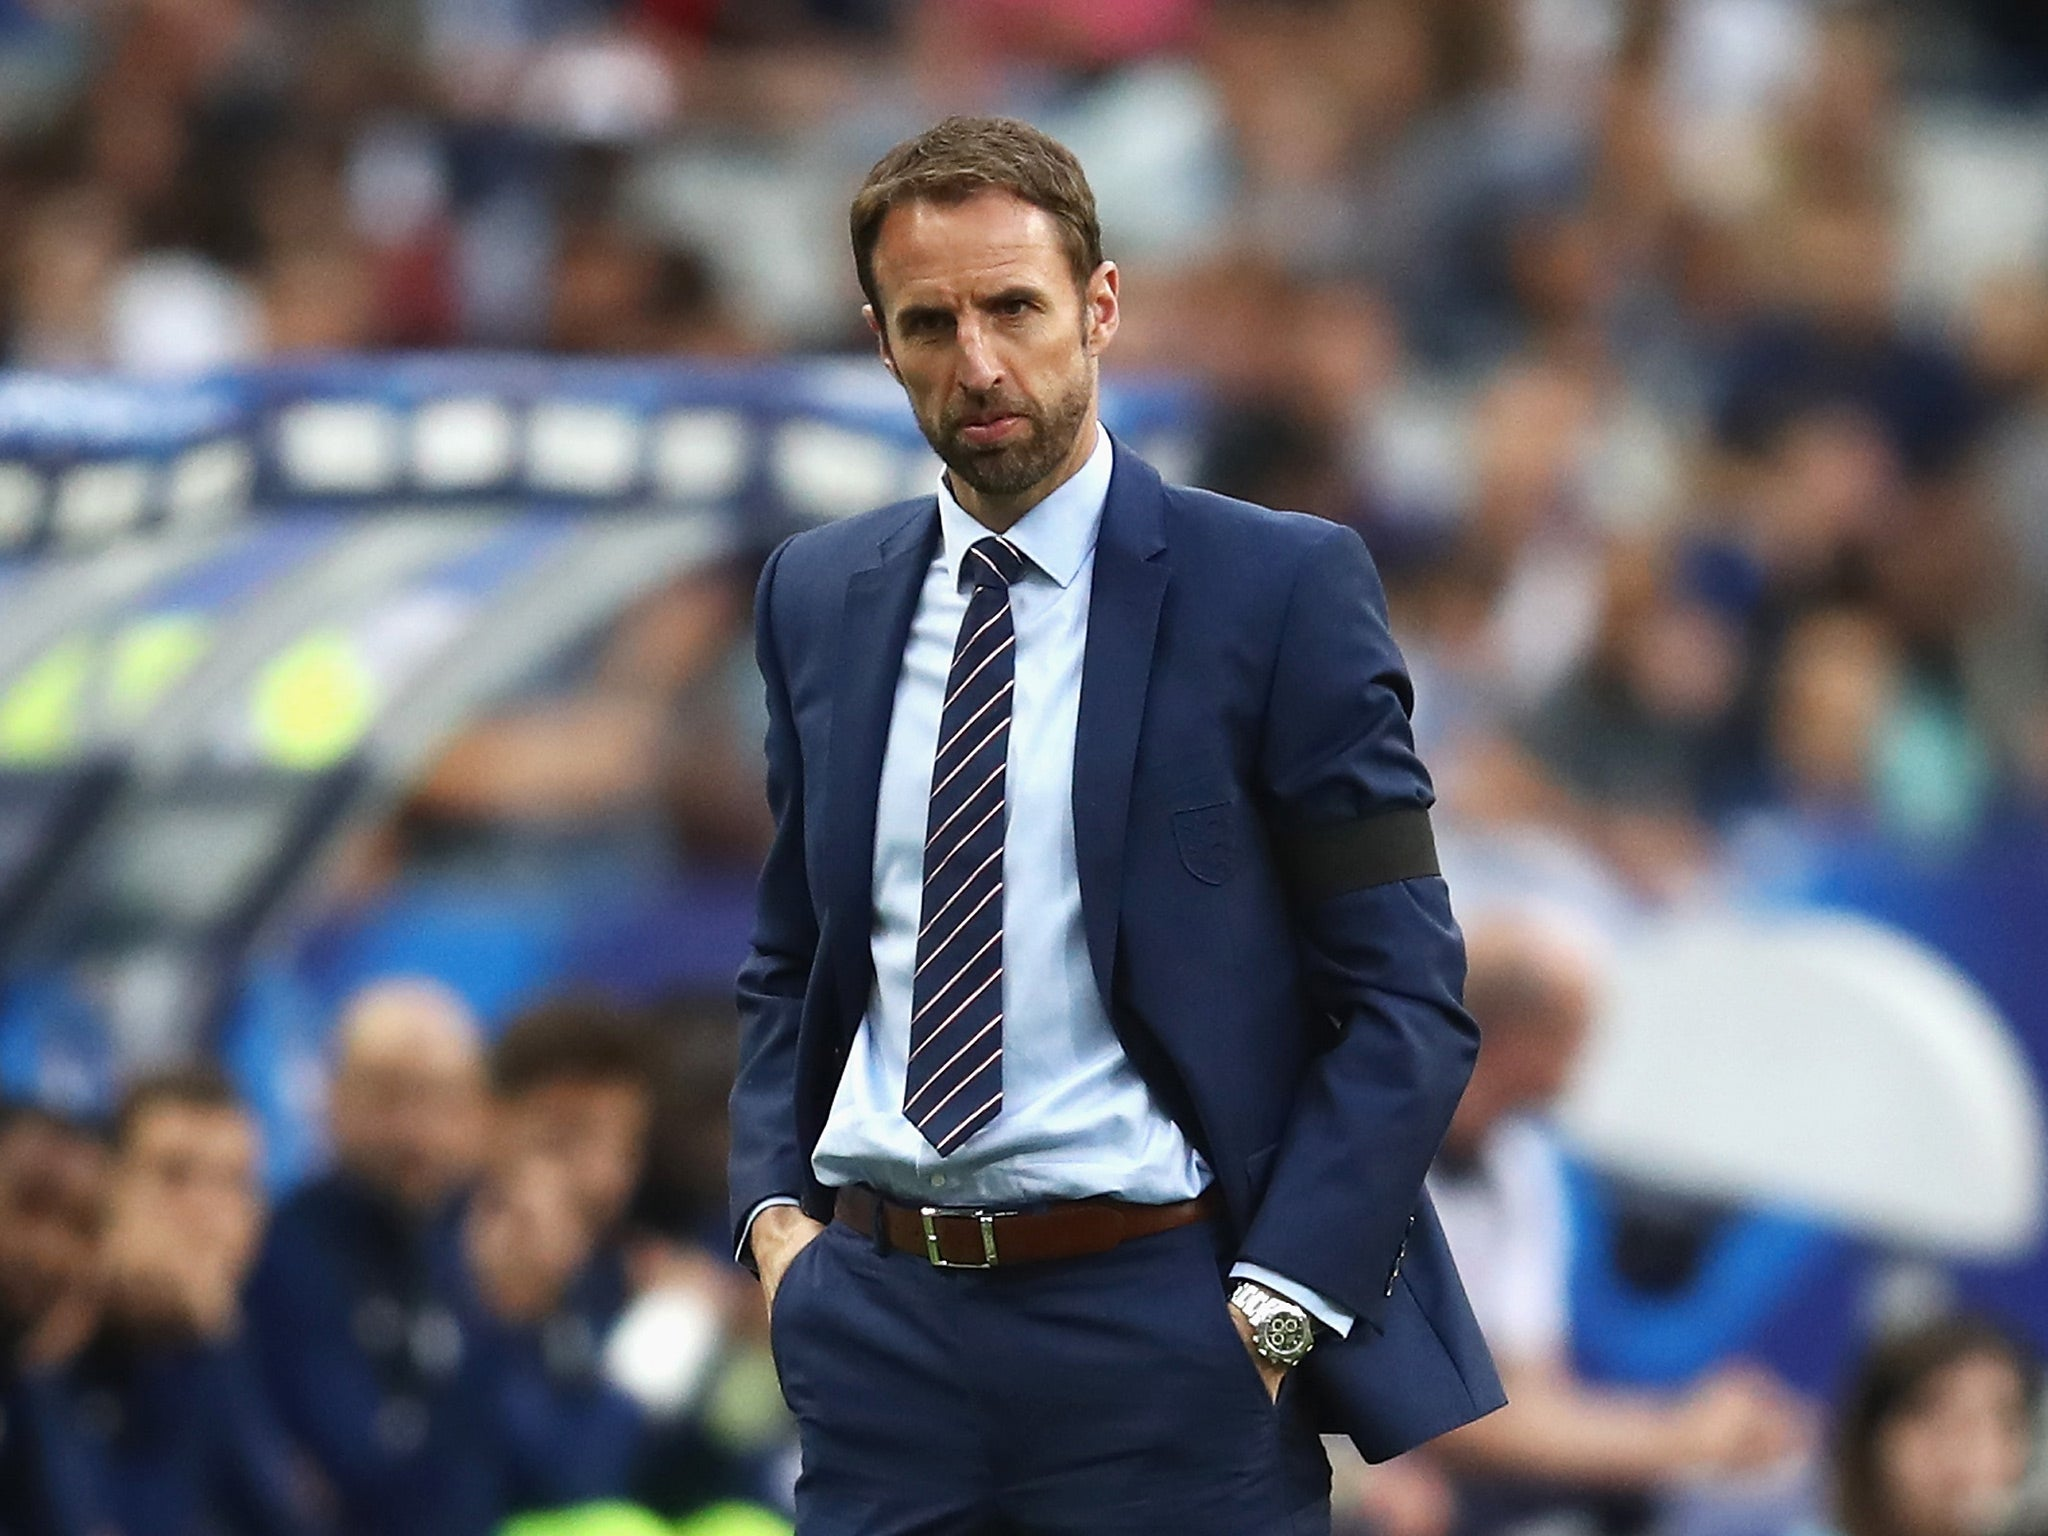 Gareth Southgate warns England players there is no 'magic wand' after chastening defeat in France